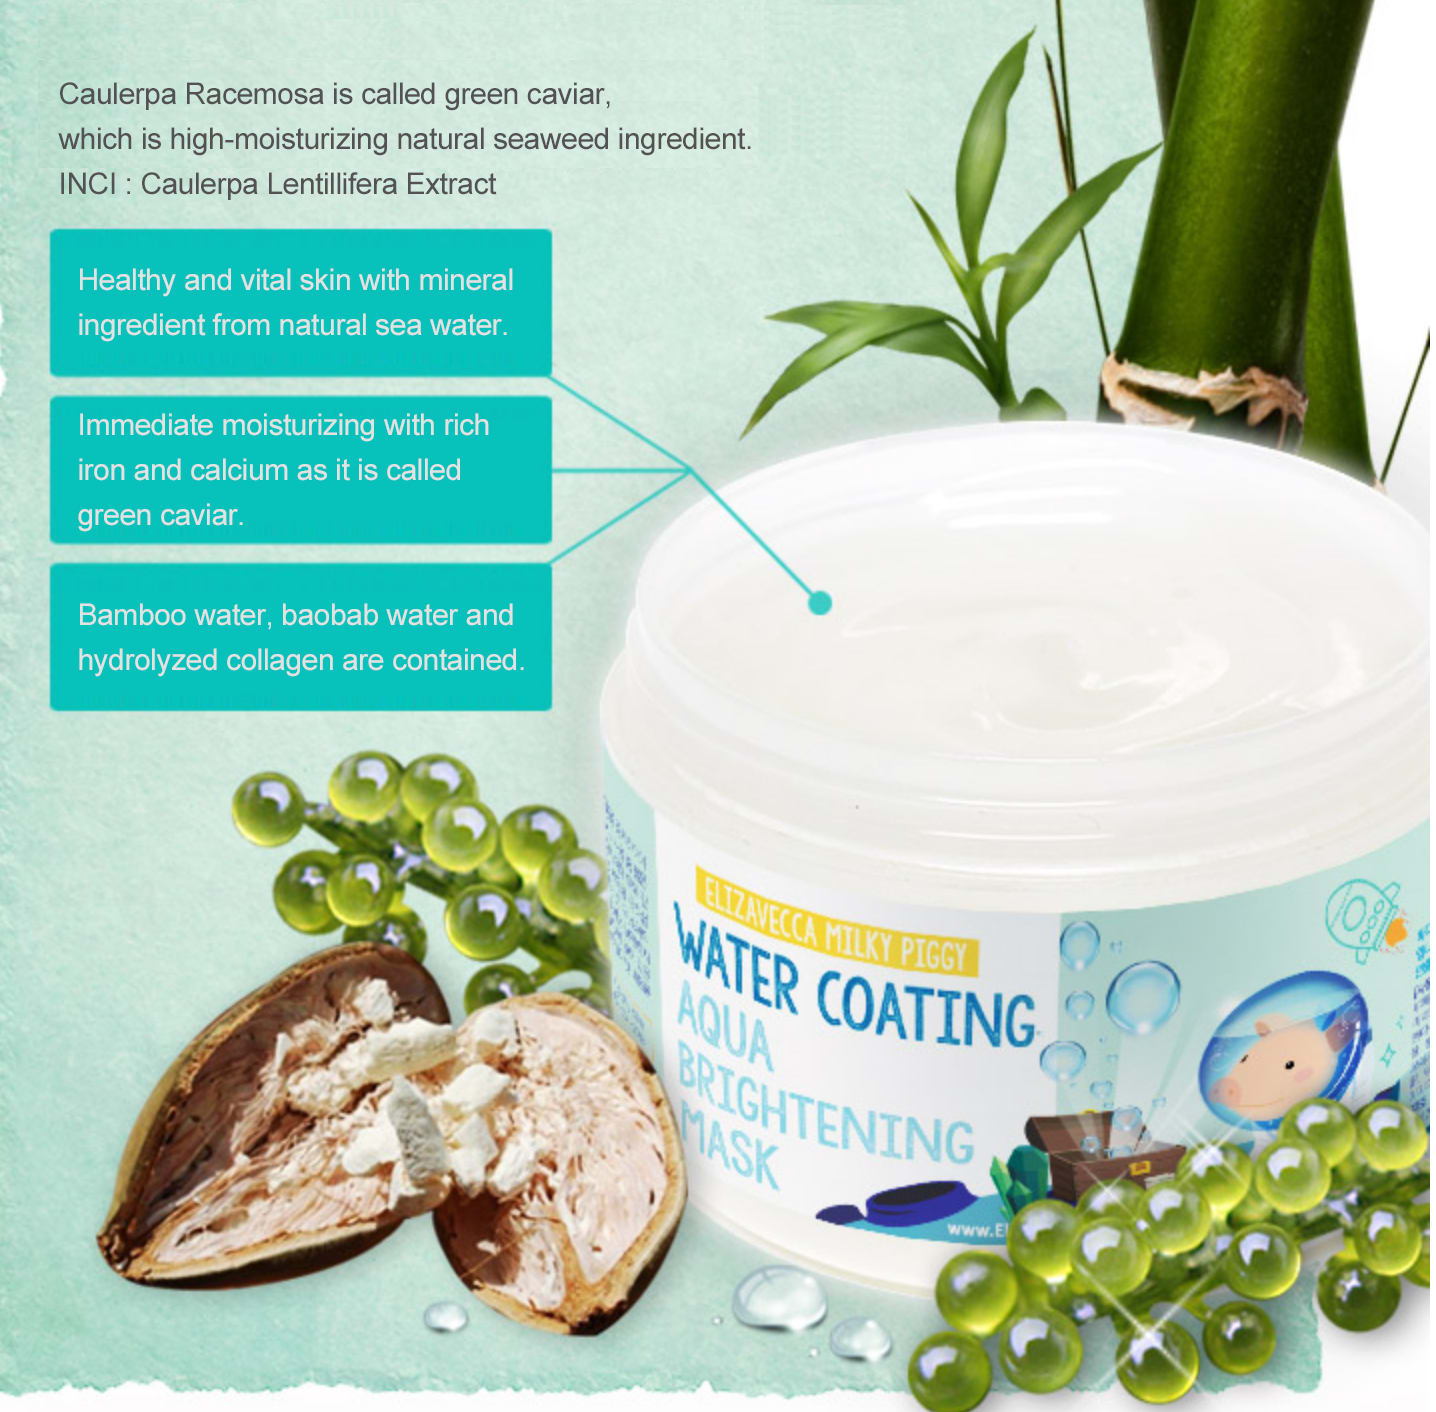 Milky Piggy Water Coating Aqua Brightening Mask 100ml How to use Description Ingredients